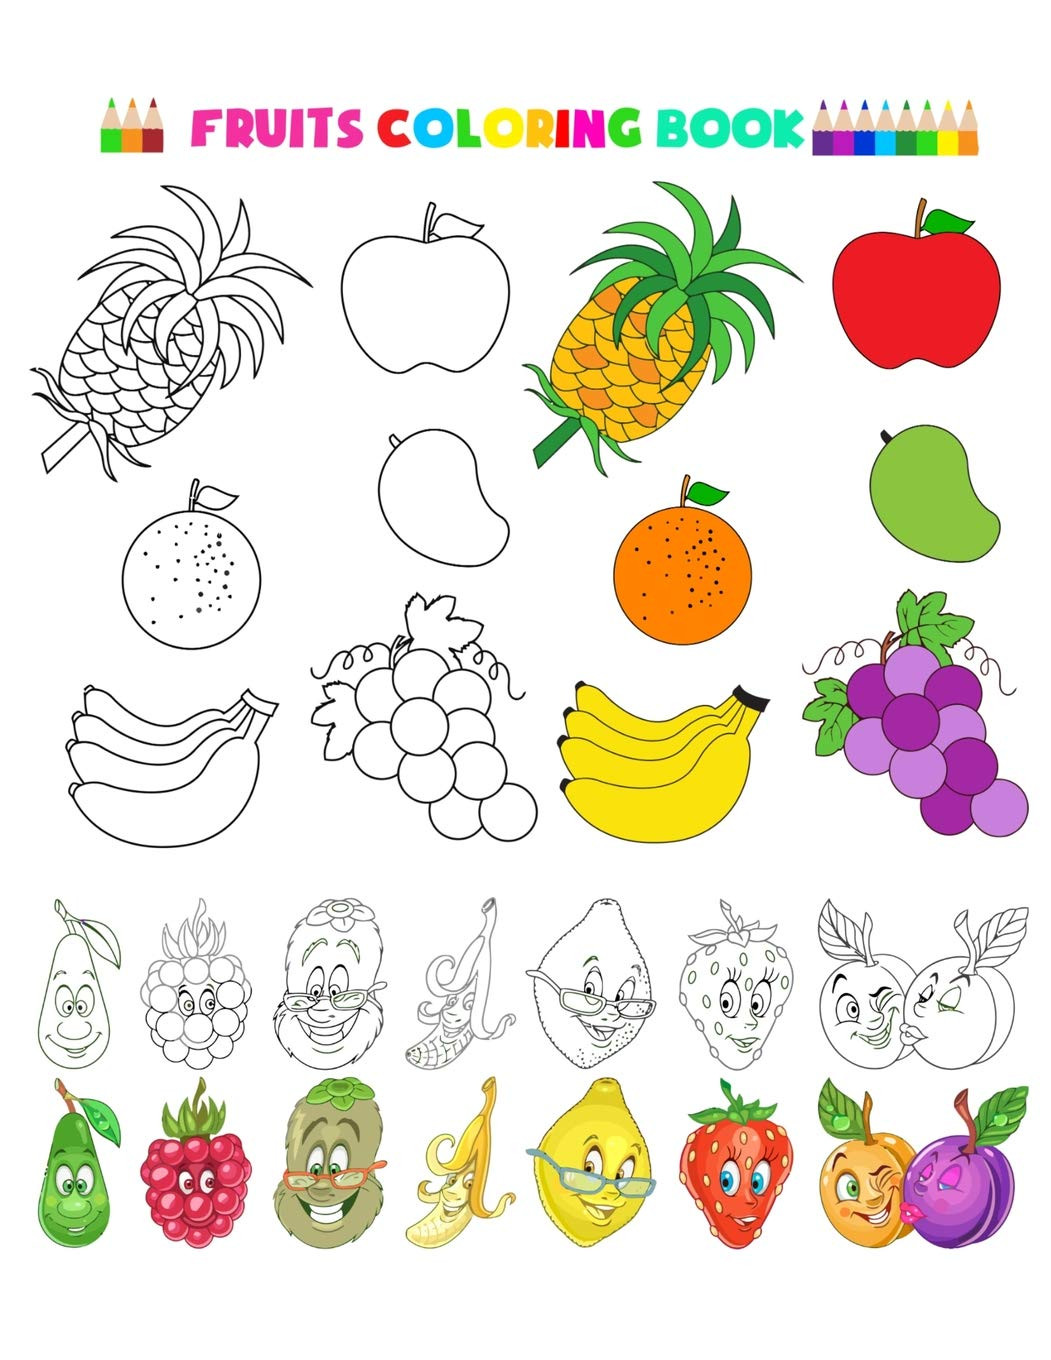 Preschool Fruits and Vegetables Worksheets Excelent Coloring Fruits and Ve Ables Picture Inspirations